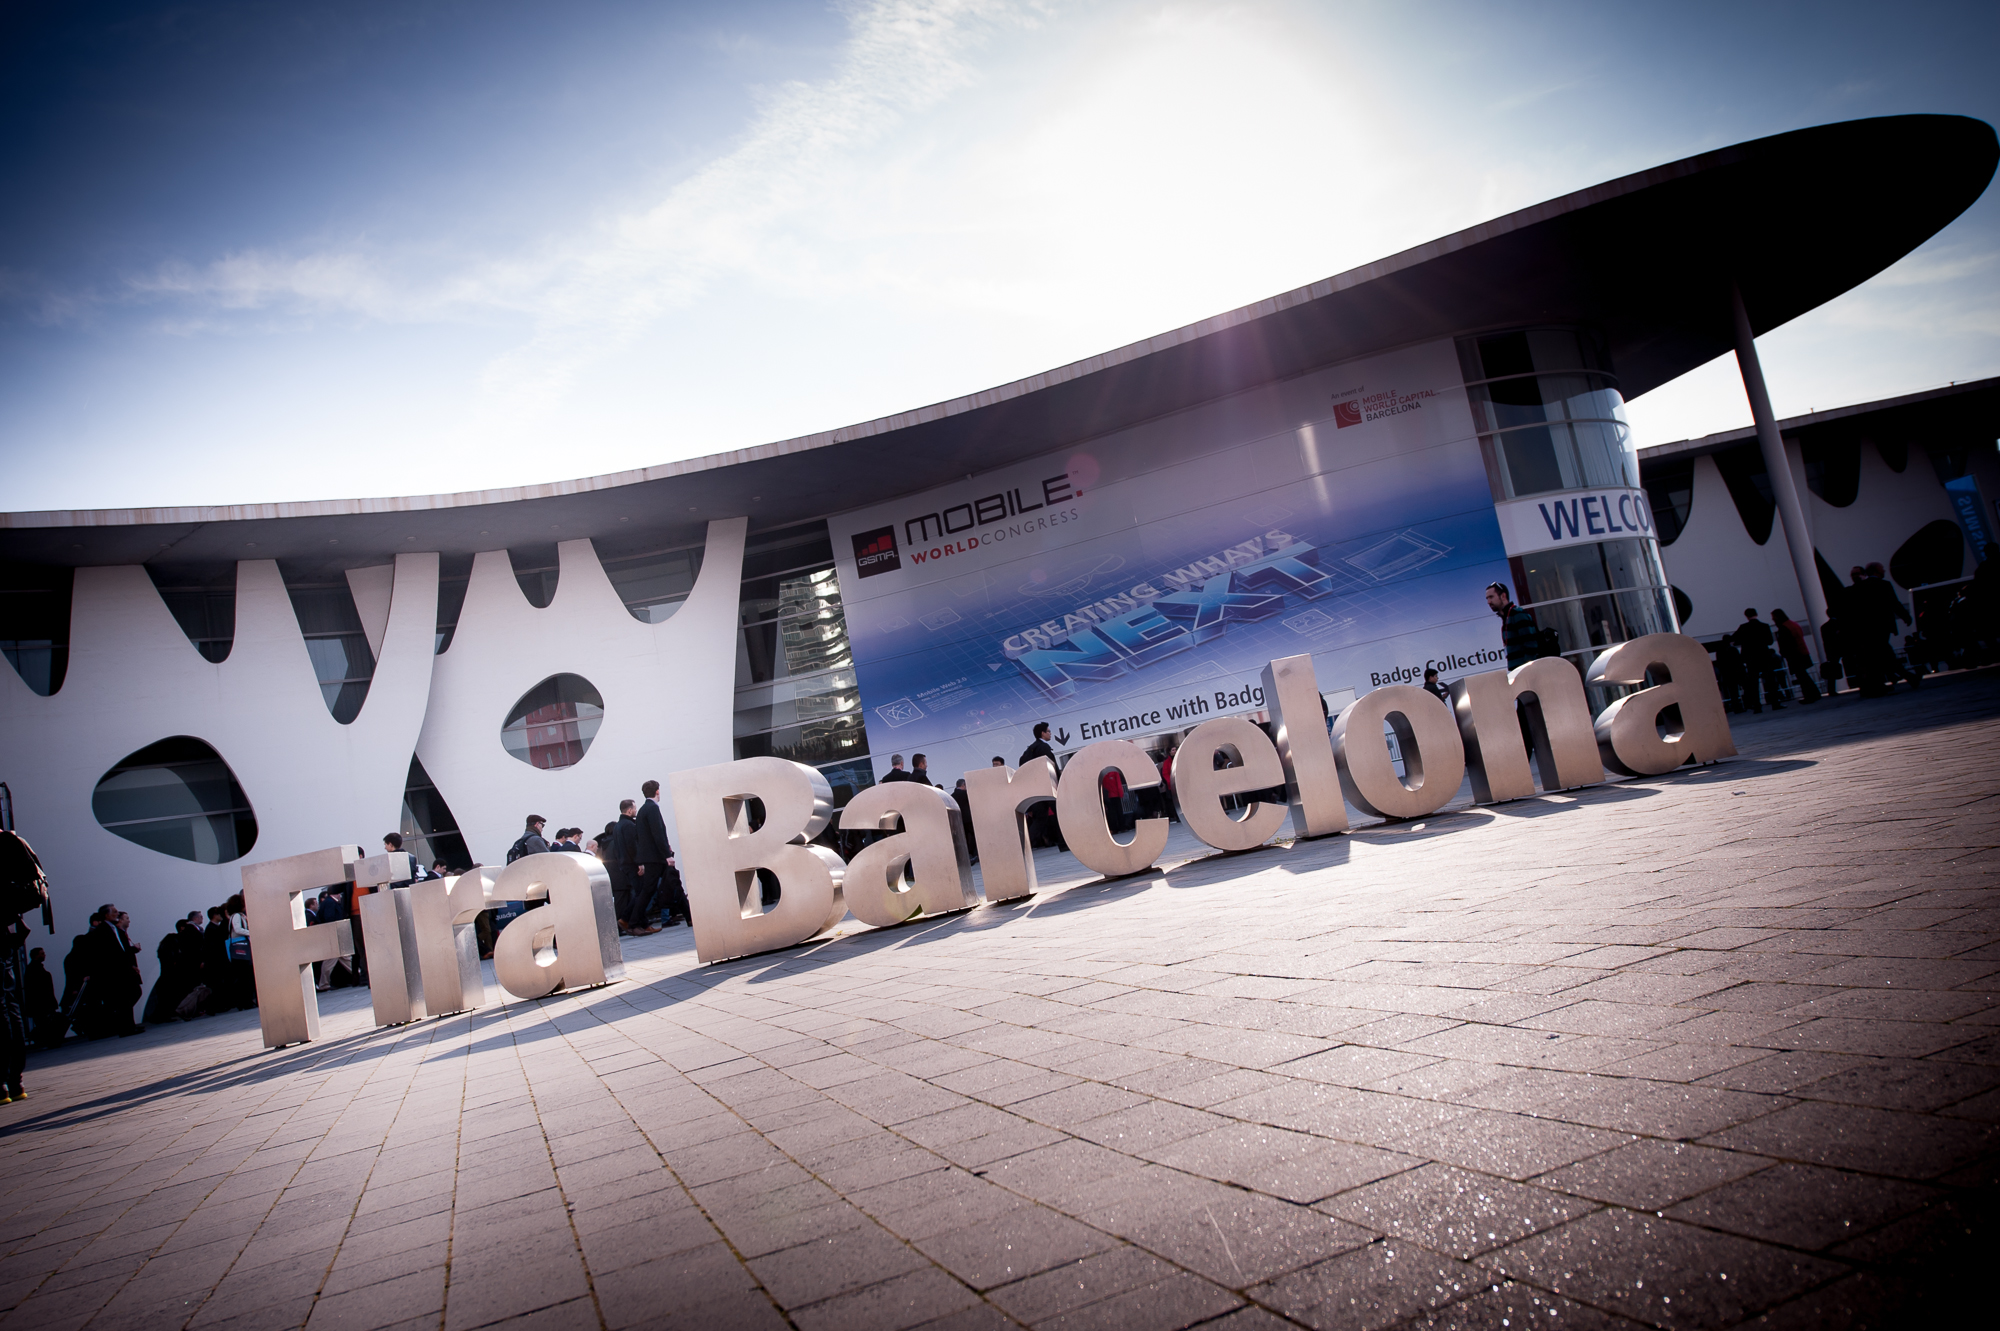 The Fira Barcelona played host to nearly 100,000 global attendees.